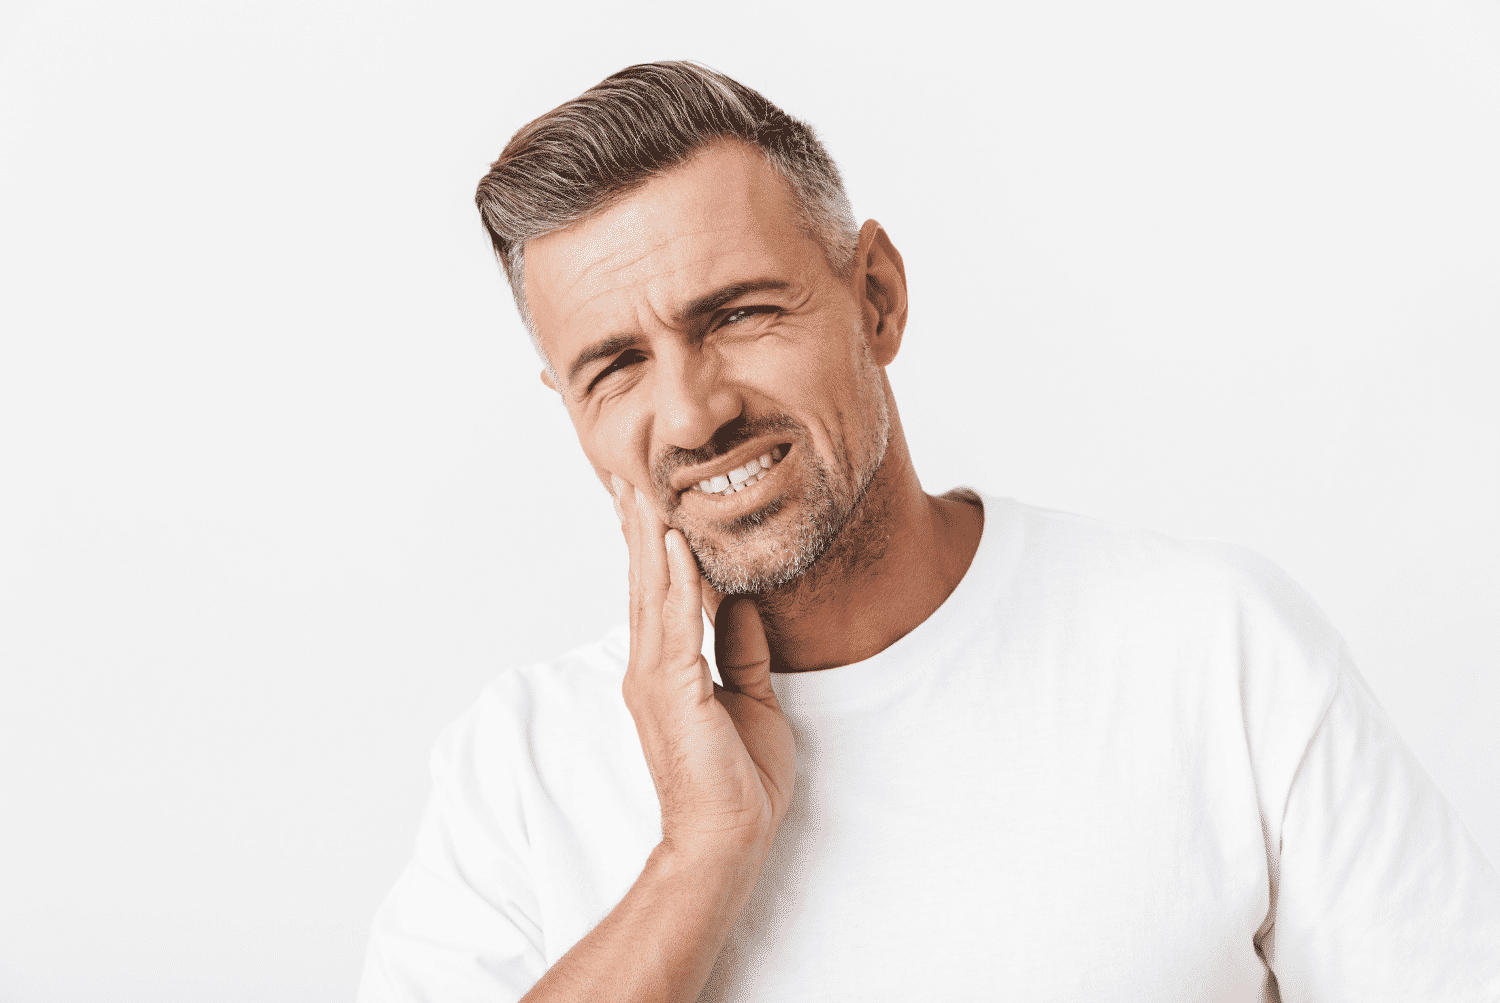 How to Fix a Cracked Tooth - Dr. Boals